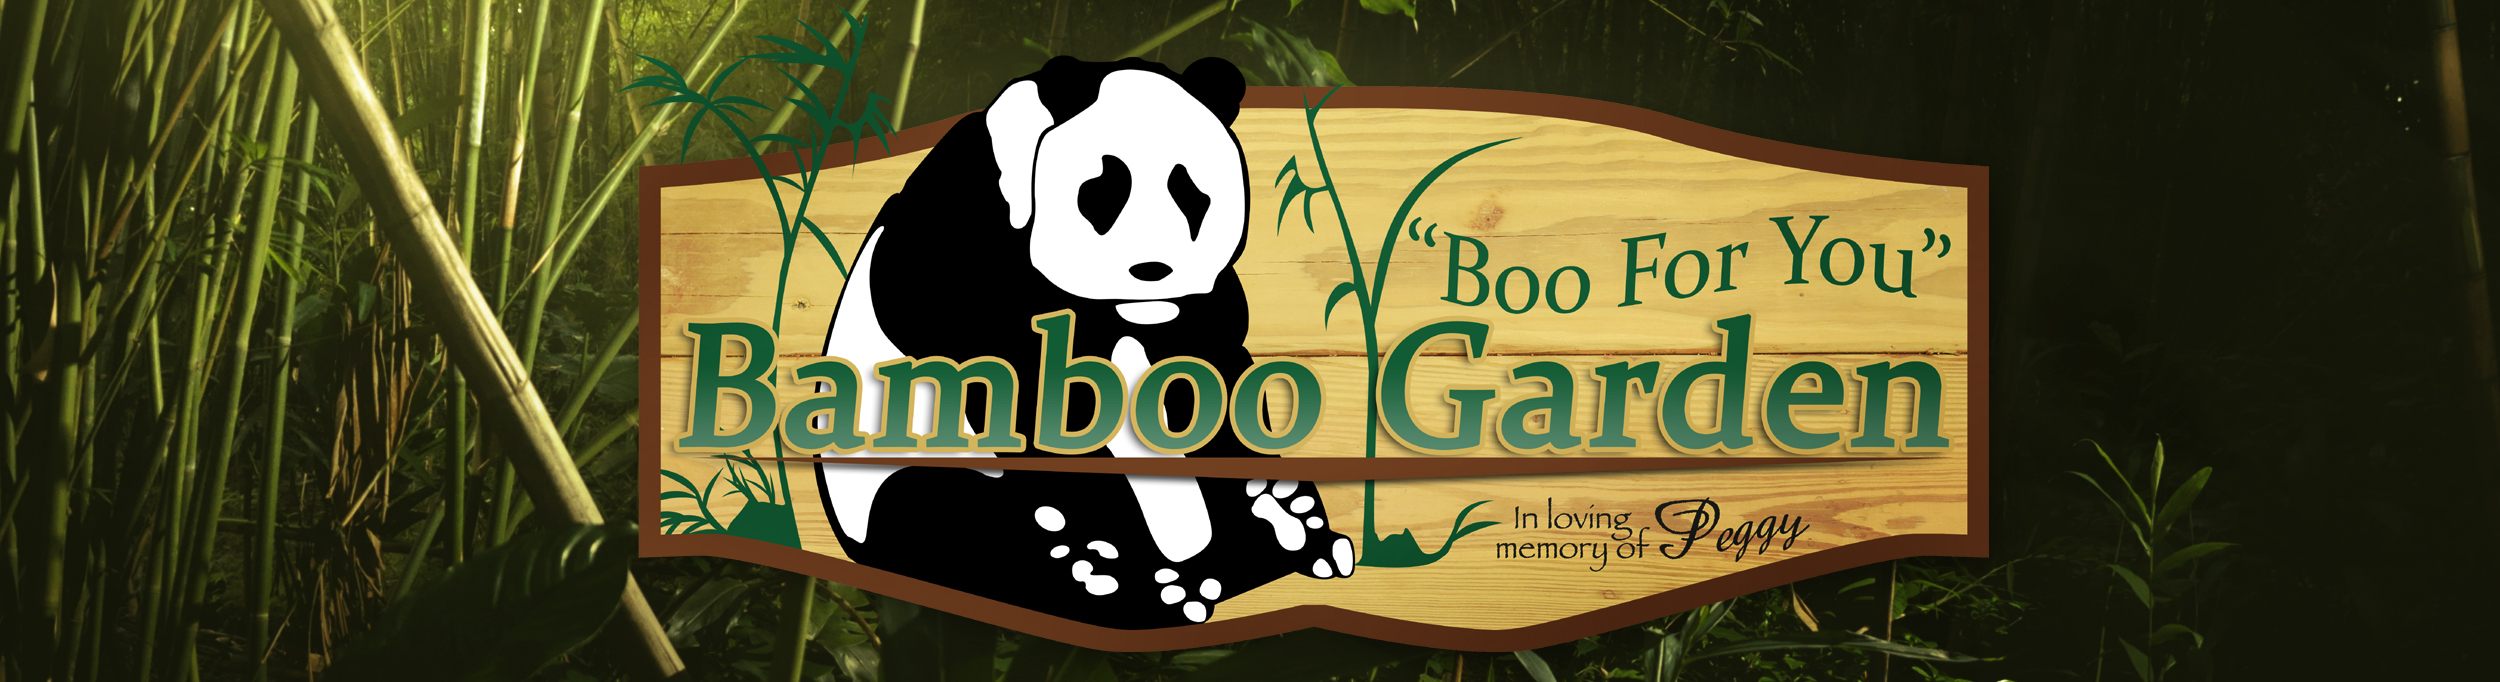 Boo for you bamboo